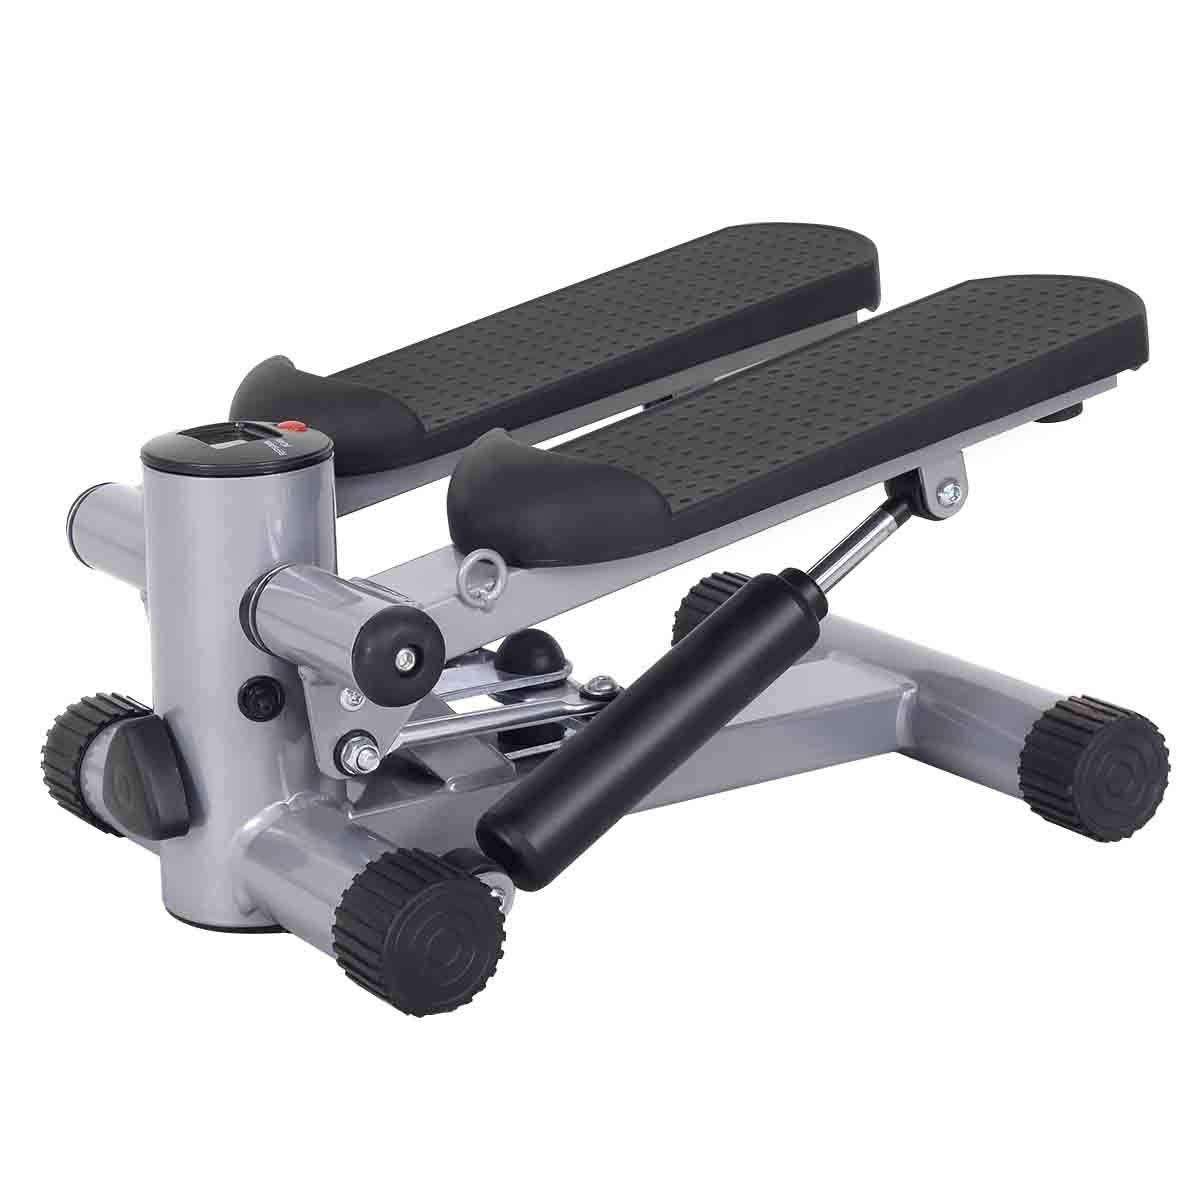 Goplus Mini Stepper Air Climber Step Fitness Exercise Machine with Resistance Band and LCD Display by Goplus (Image #6)